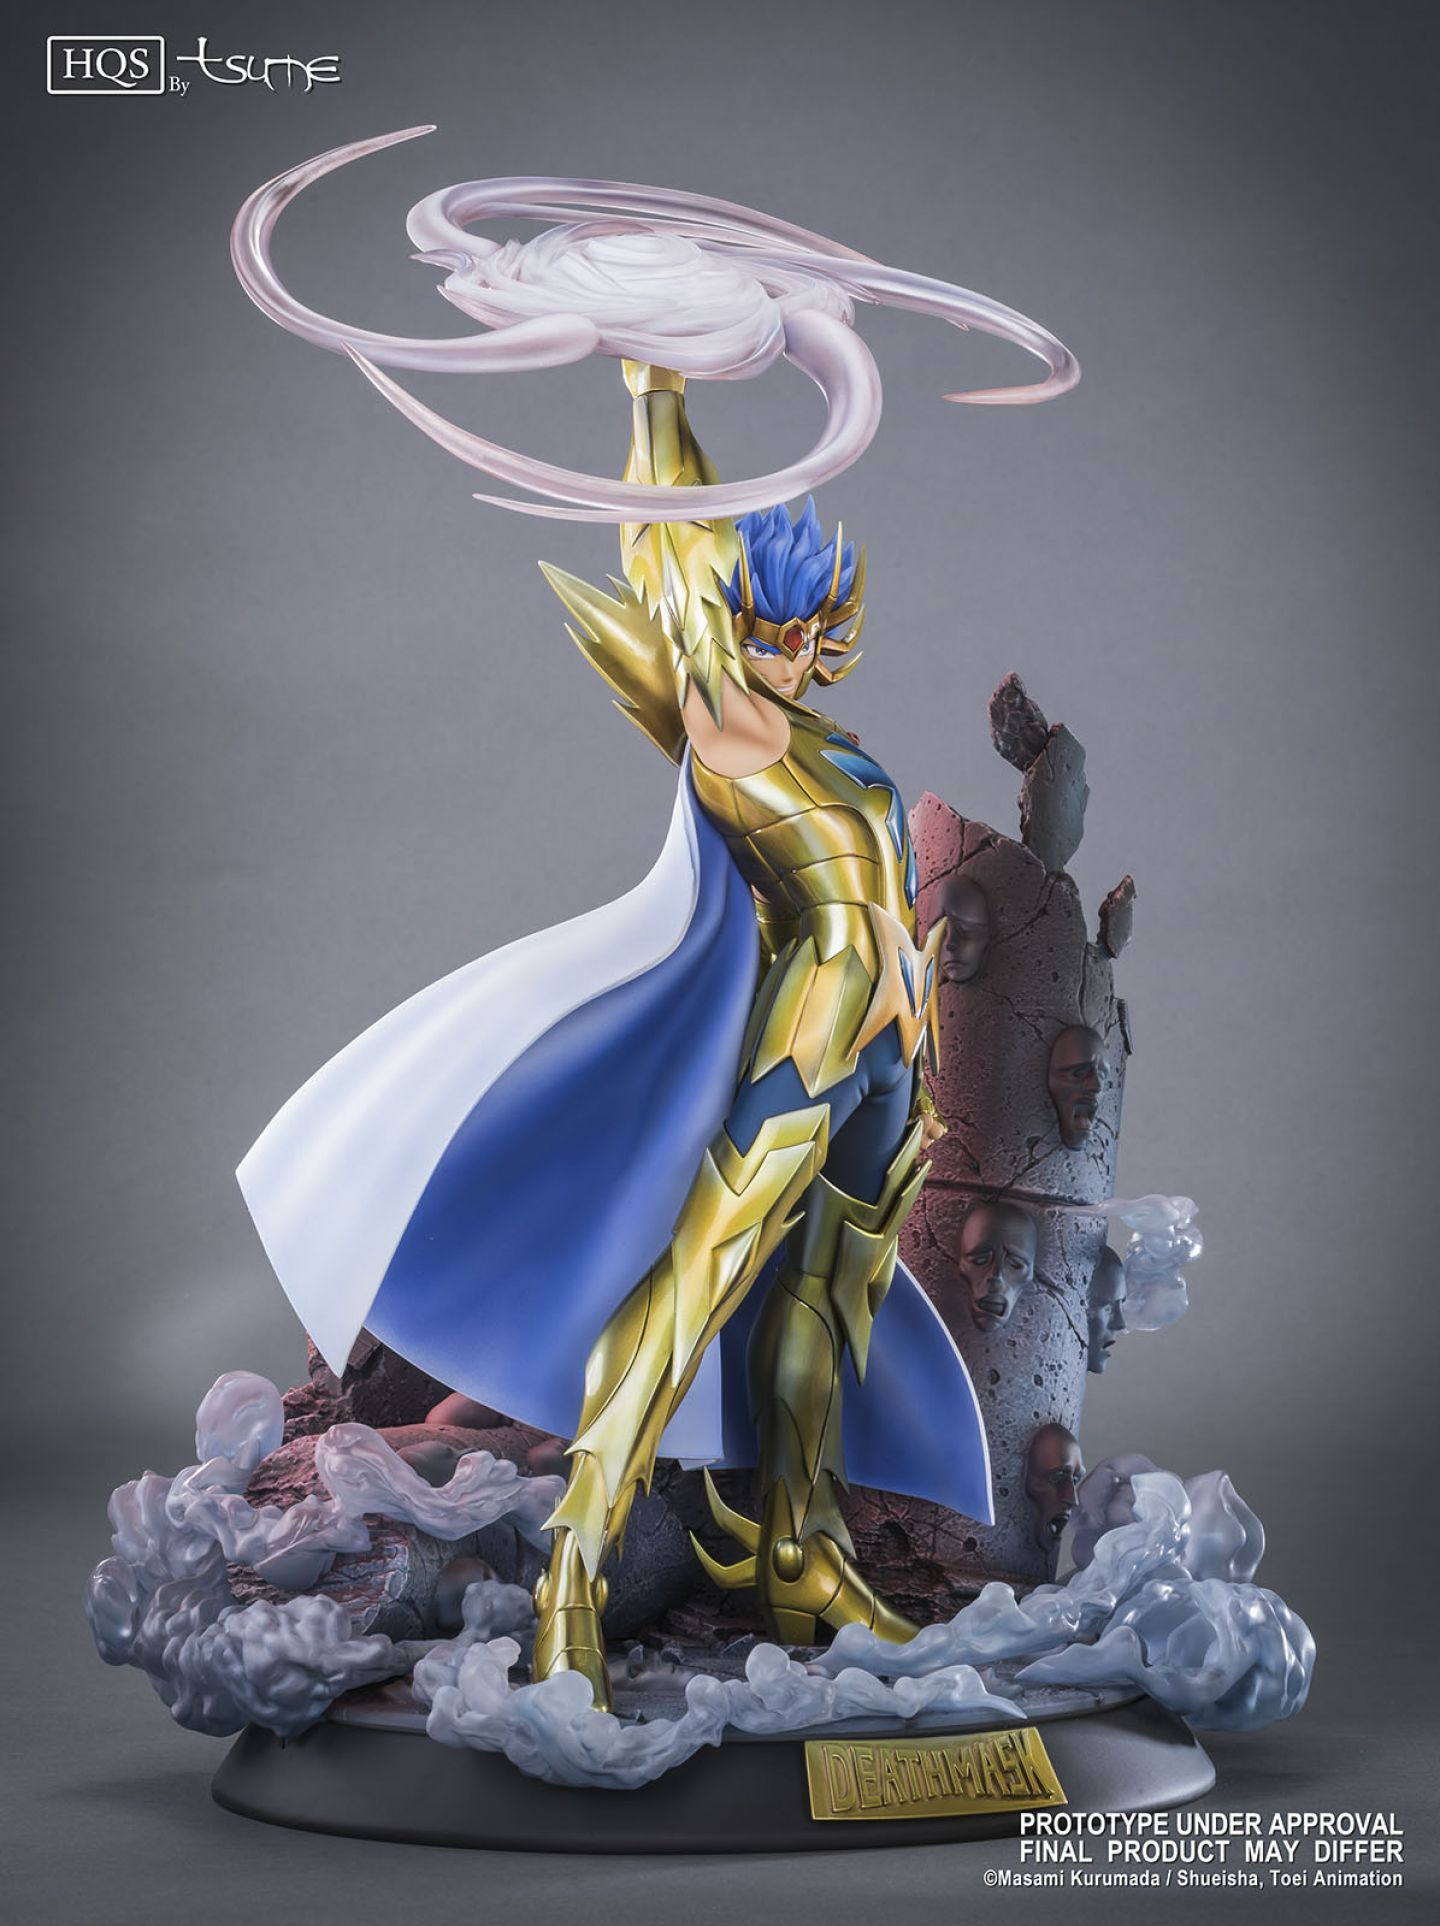 Tsume Art Saint Seiya Death Mask Cancer HQS Statue